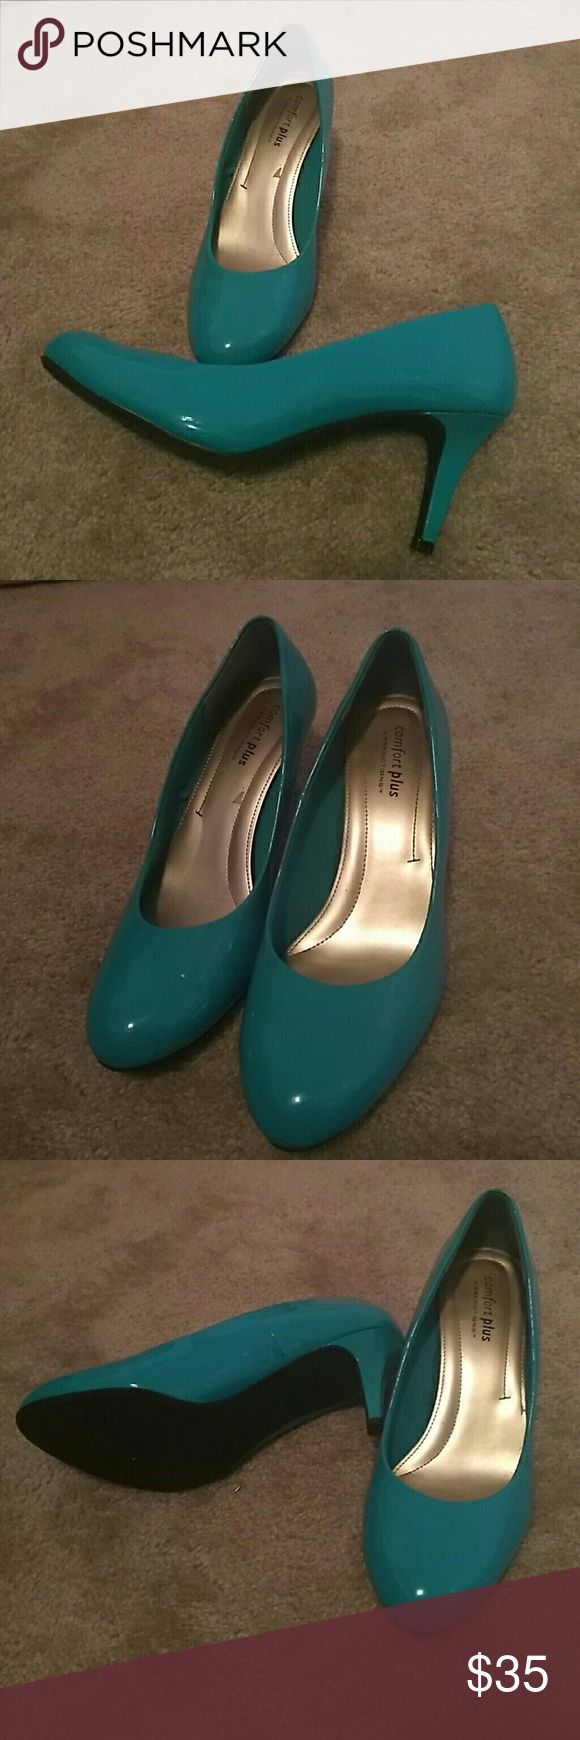 Dressy round toe turquoise heels WIDE Width 12W Reposh because apparently I can't walk in heels unless they're chunky. I tried many times but don't have the balance for it lol. Used but in  great wearable condition. I will clean before shipping them. For wide feet. Open to reasonable offers. comfort plus Shoes Heels